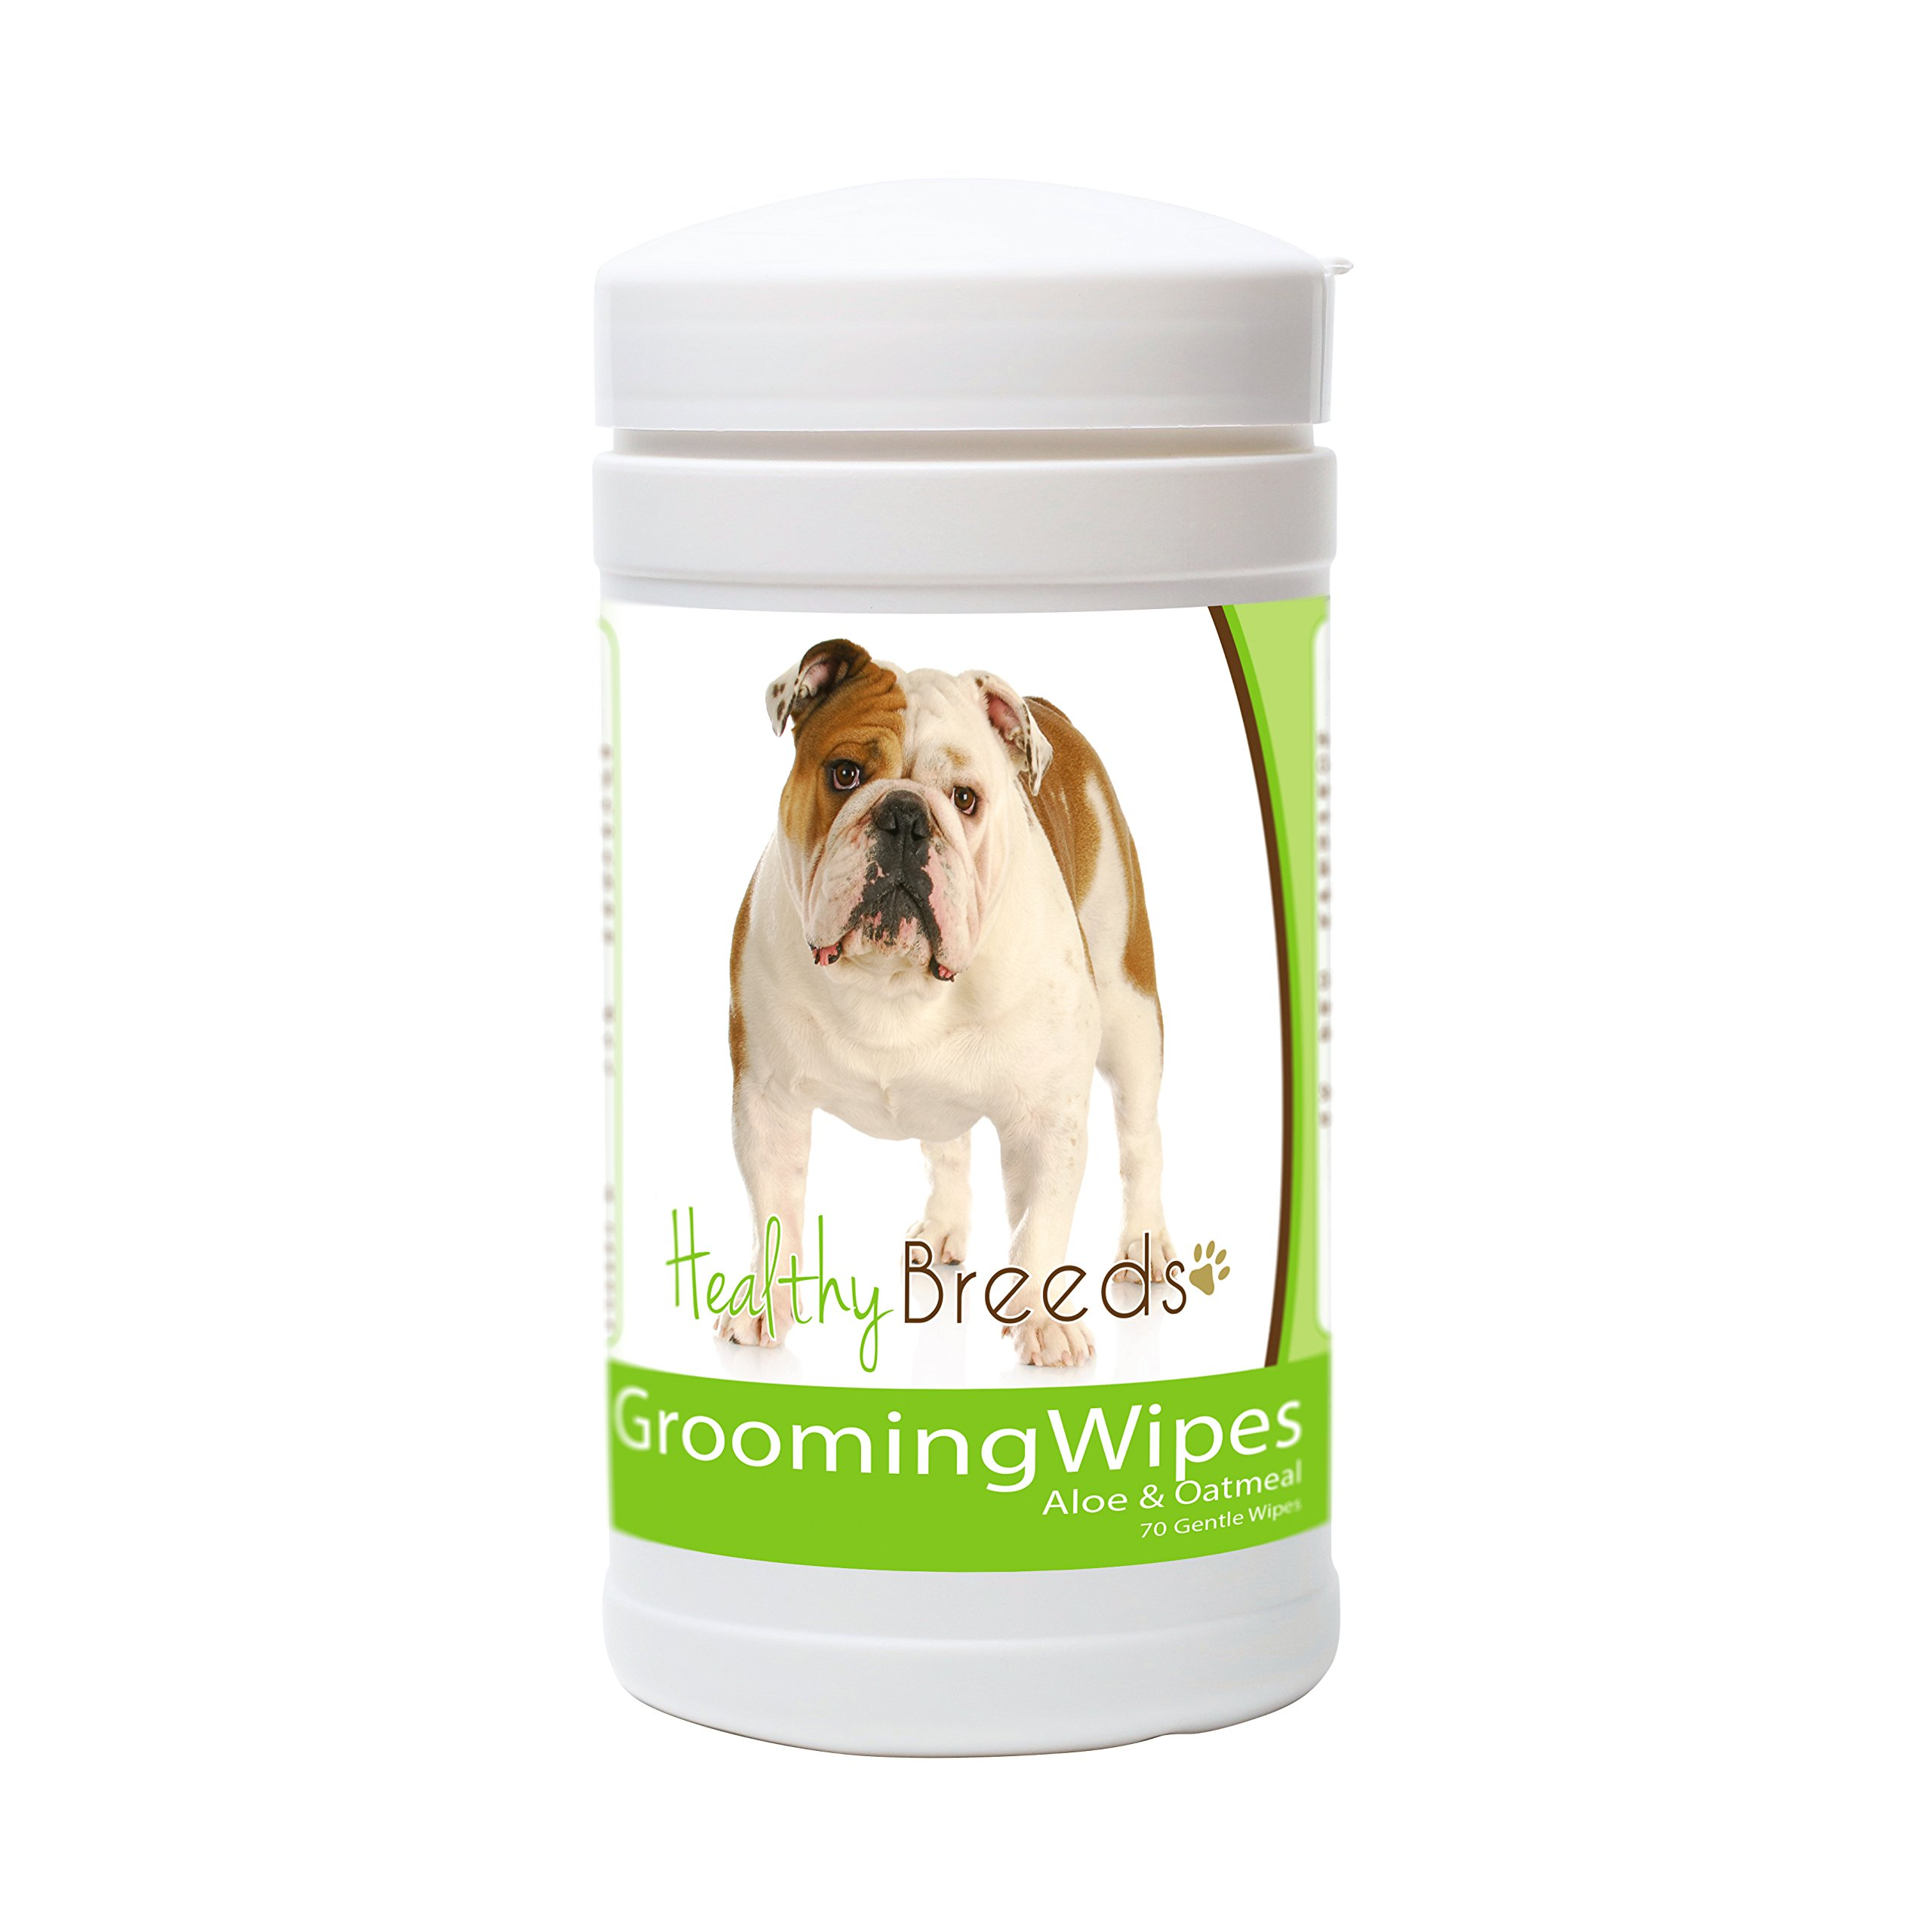 Healthy Breeds Dog Multi-Purpose Grooming & Deodorizing Wipes for Bulldog - OVER 200 BREEDS - Cleans Paw Pads Skin Folds Armpits Face Butt - 70 Count - Aloe & Oatmeal for Sensitive Skin